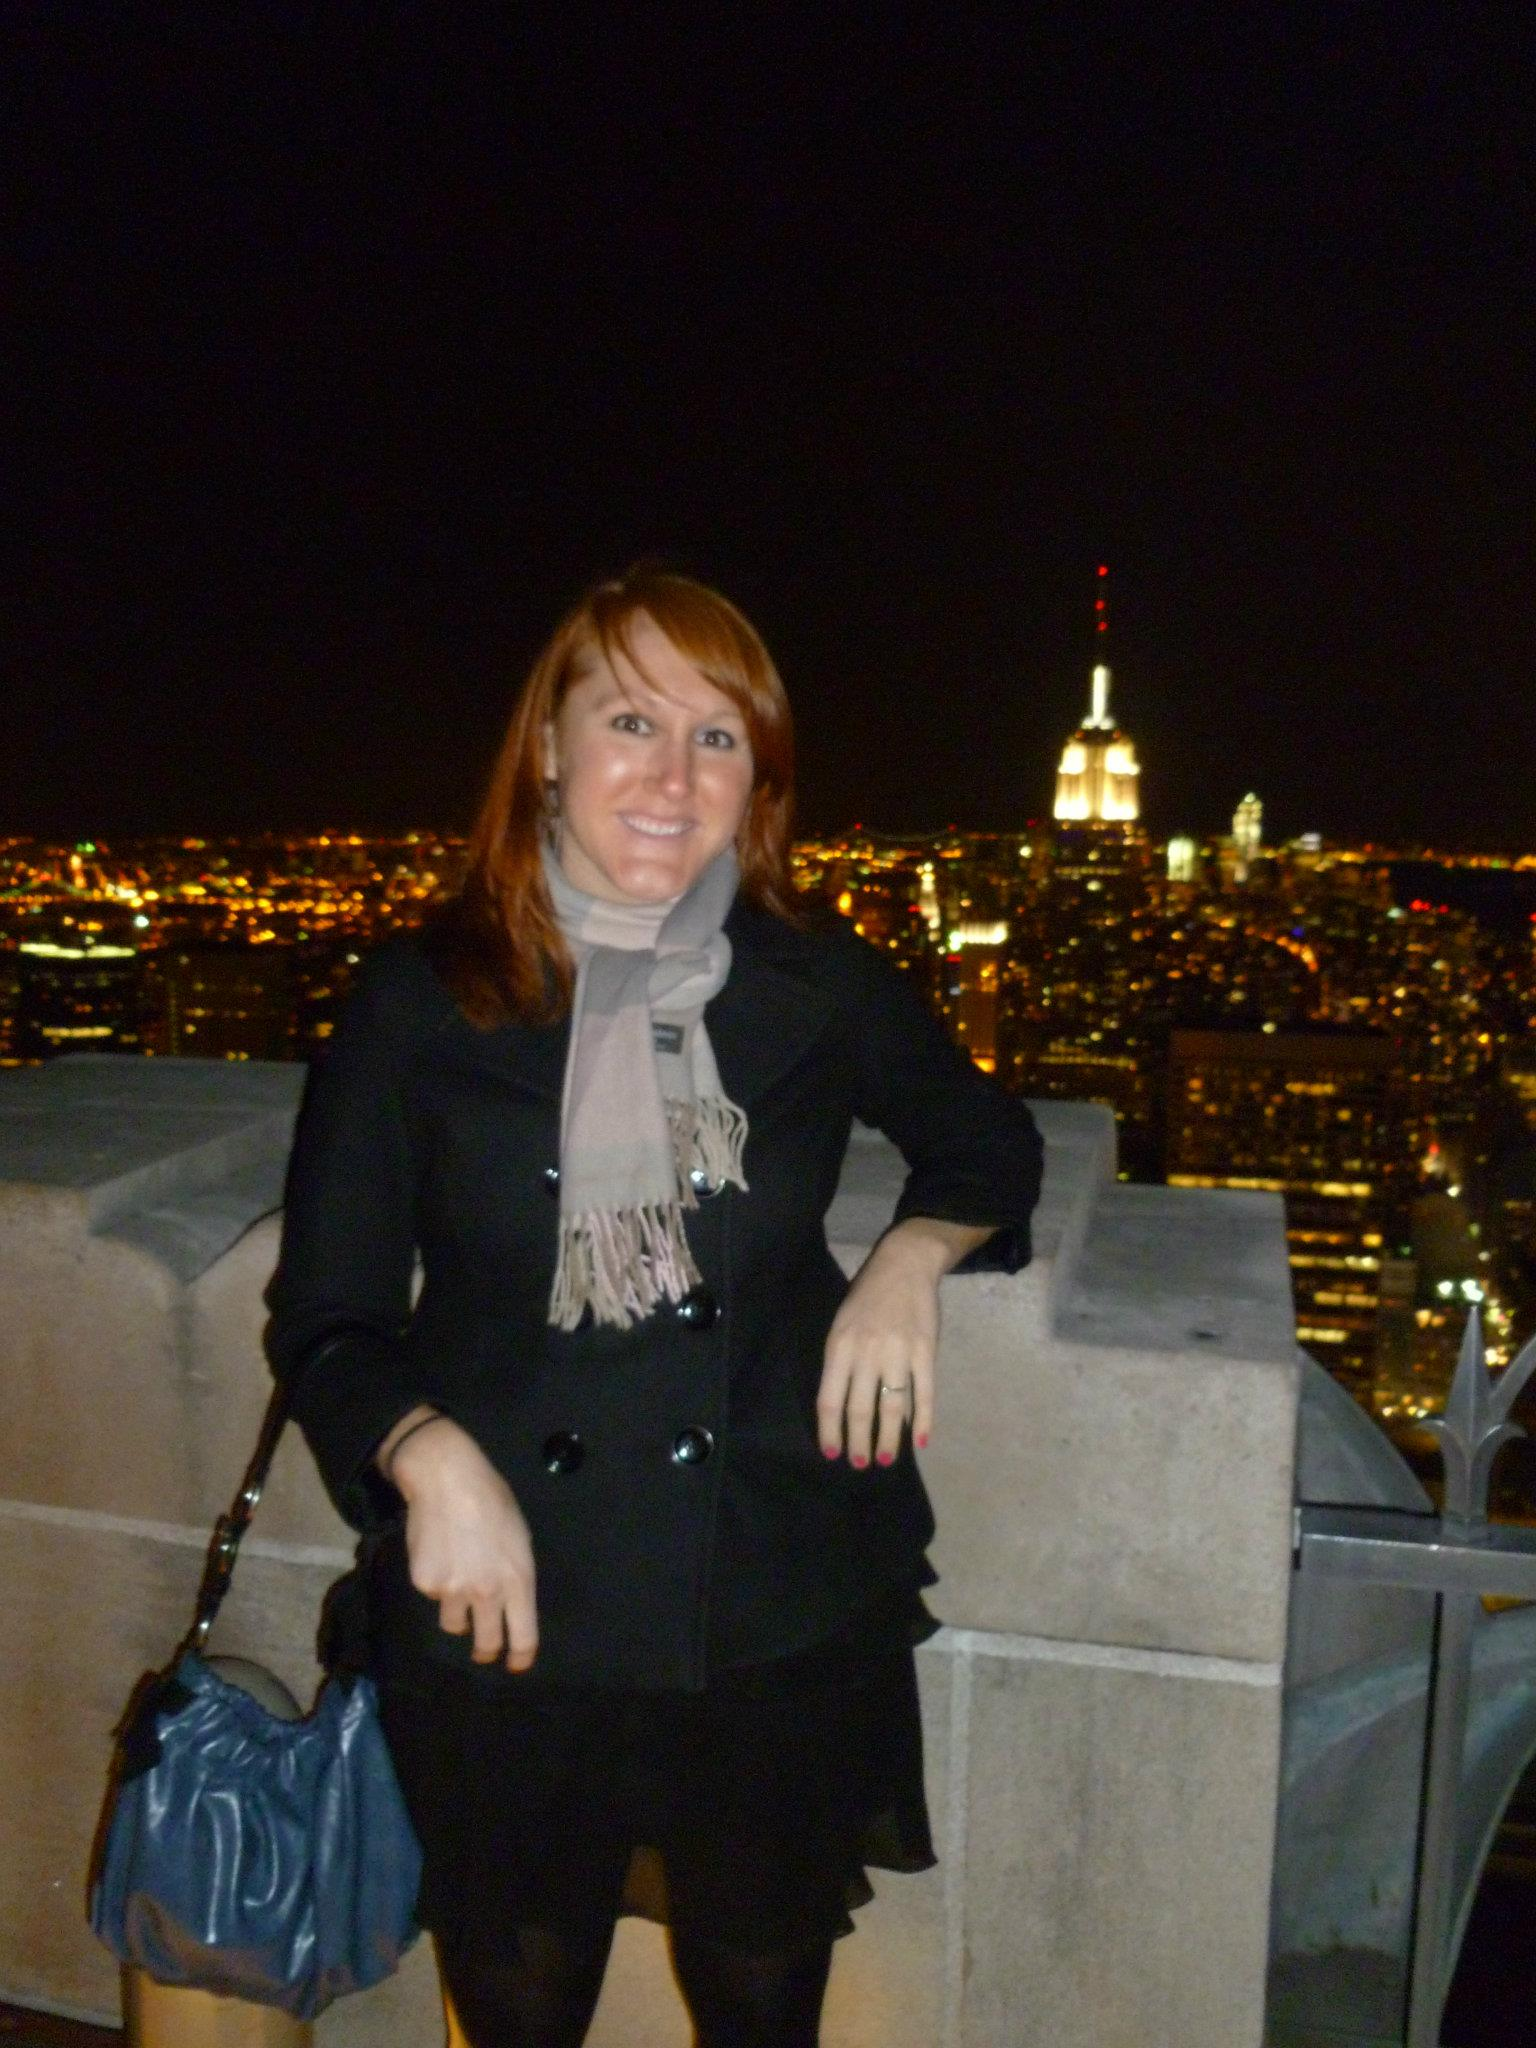 Holly, The Ring and Empire State Building